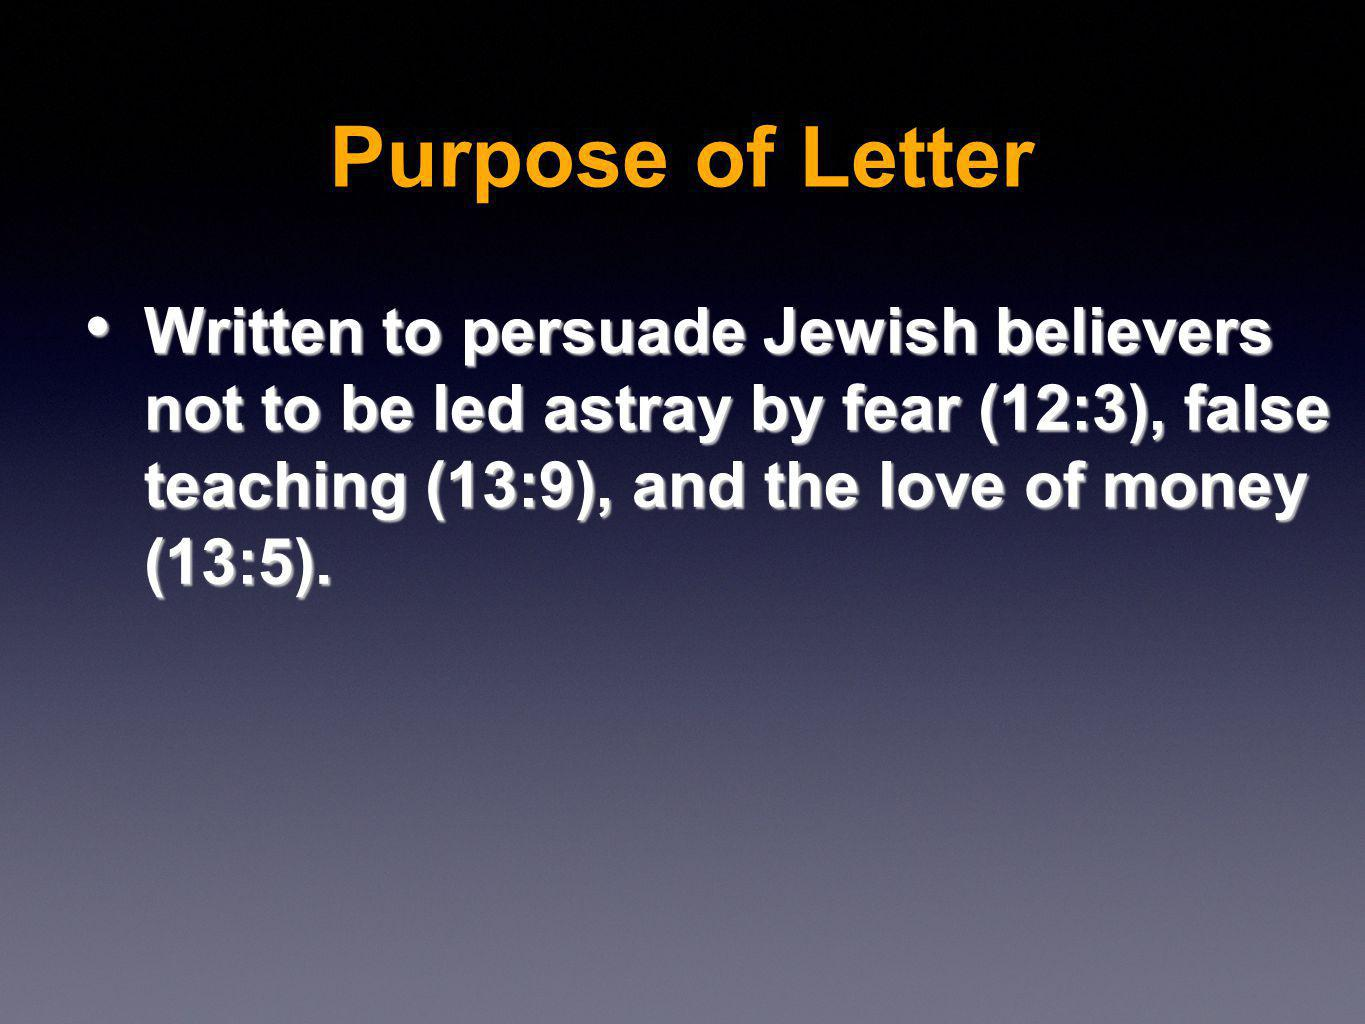 Written to persuade Jewish believers not to be led astray by fear (12:3), false teaching (13:9), and the love of money (13:5).